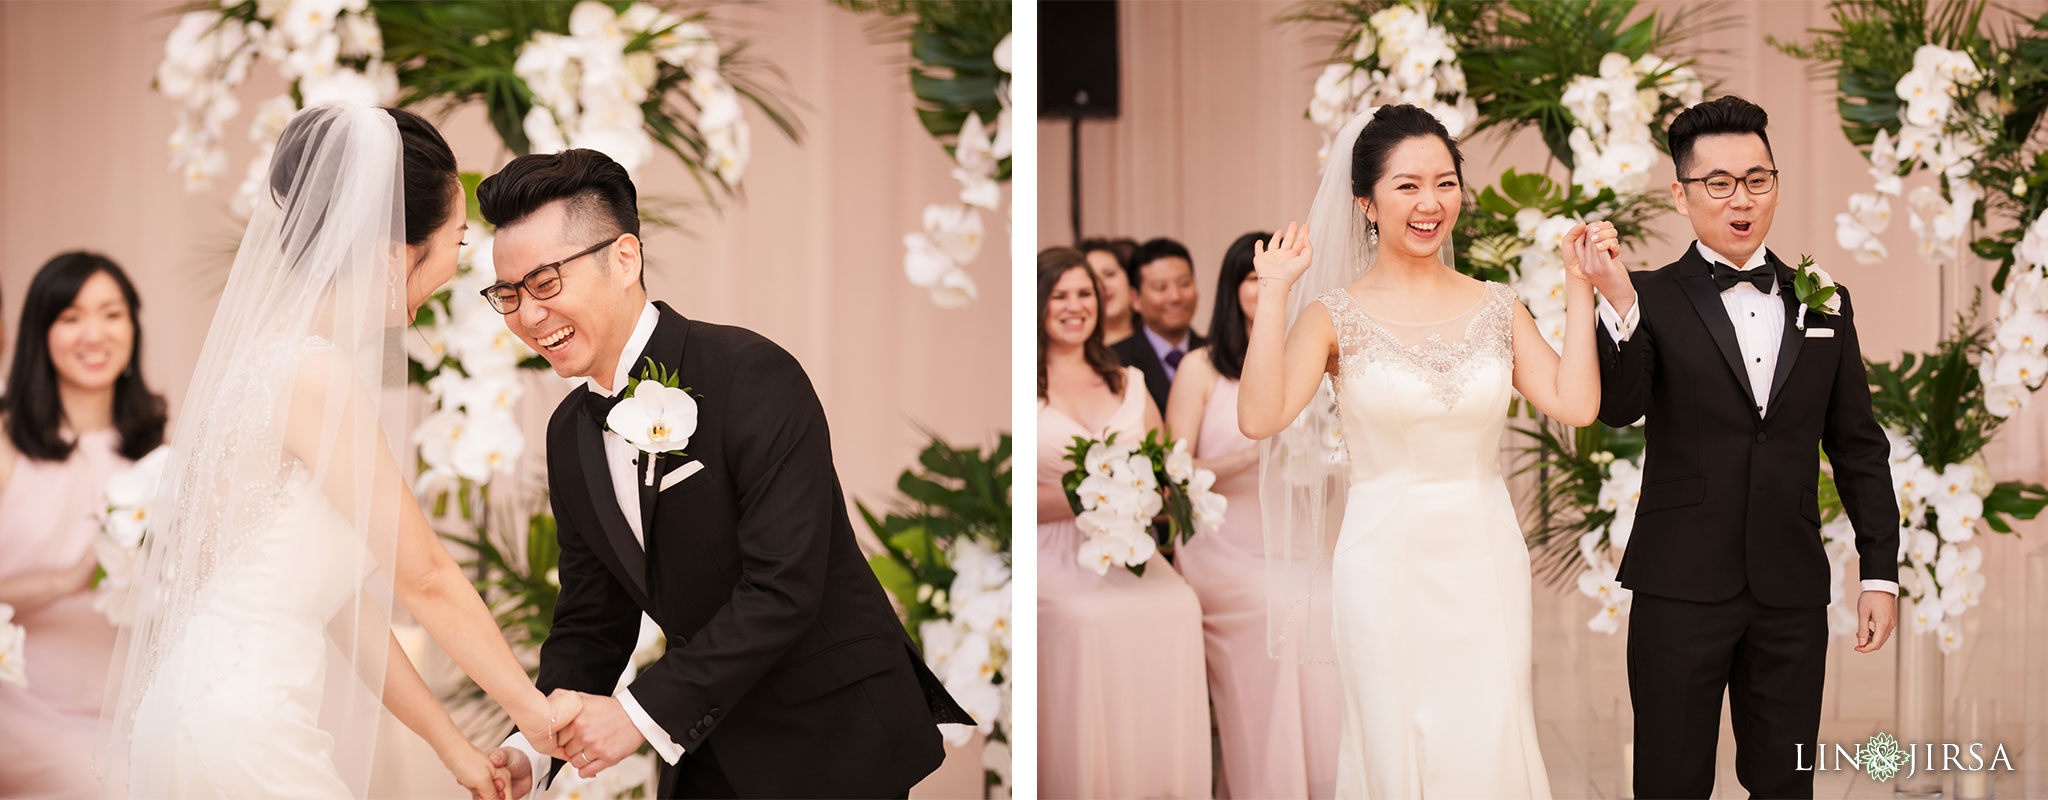 27 segerstrom center for the arts costa mesa wedding photography